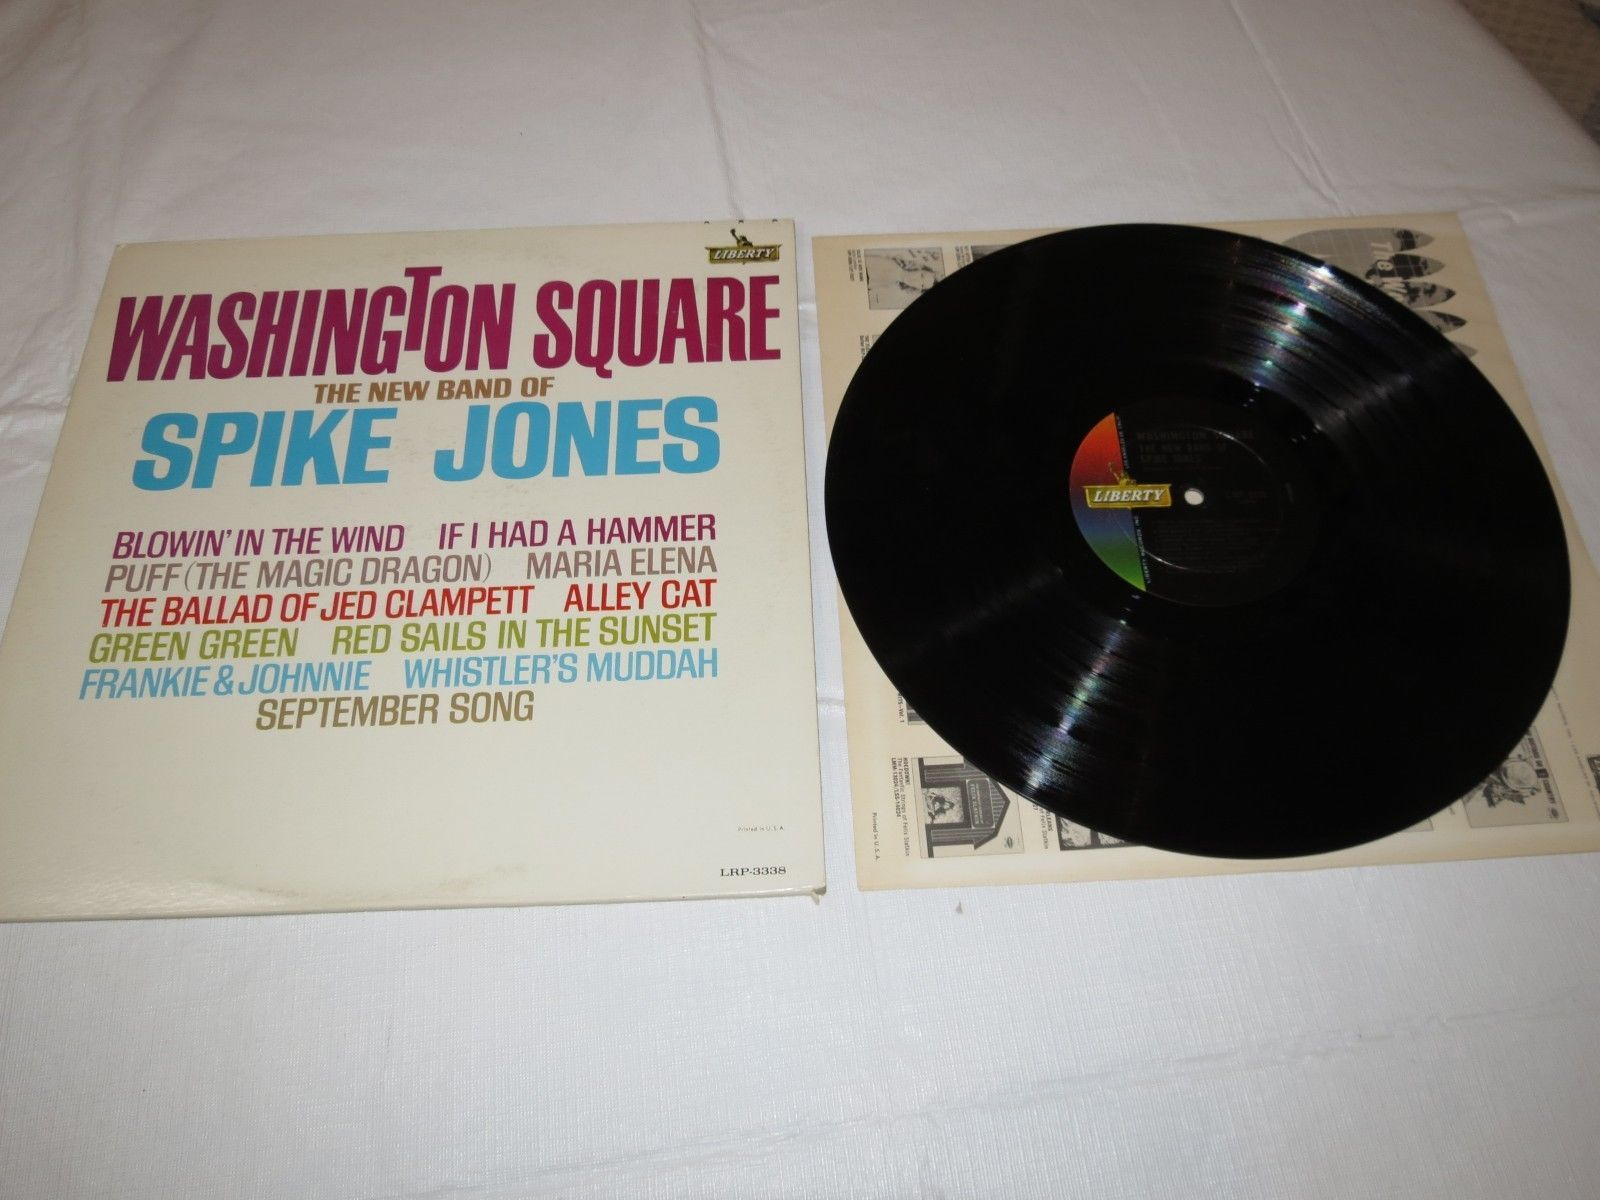 Primary image for Washington Square The New Band of Spike Jones LRP-3338 Liberty LP Album Record